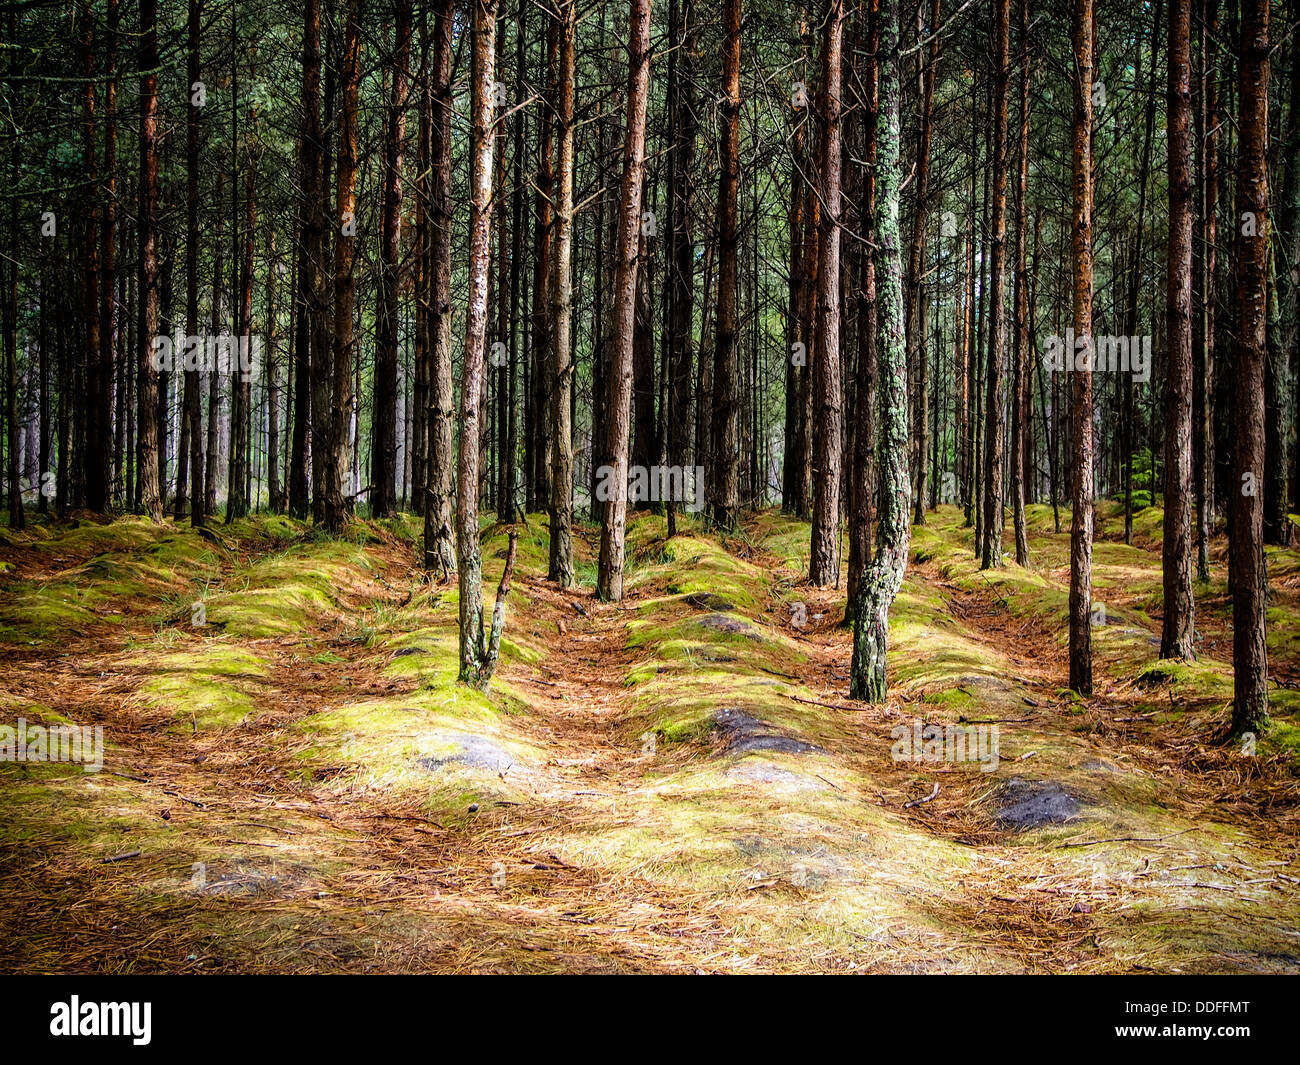 a-dense-forest-with-raised-ridges-on-the